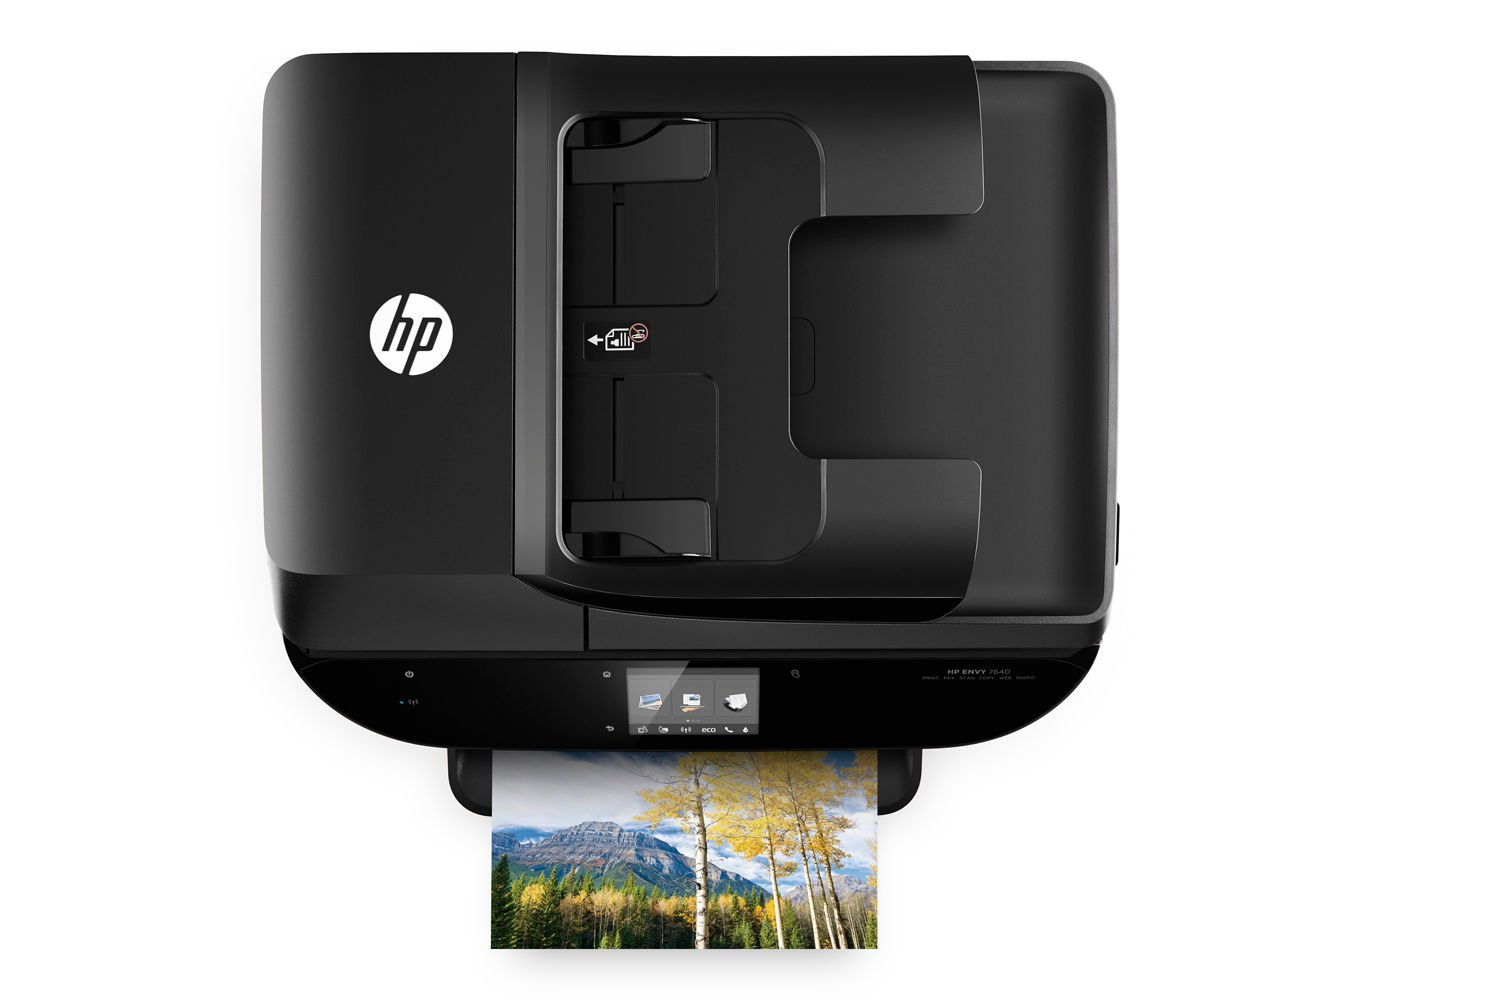 HP ENVY 7644 e-All-in-One Photo Quality Inkjet Printer, wireless printing, mobile phone compatible, in black (Renewed) by HP (Image #6)